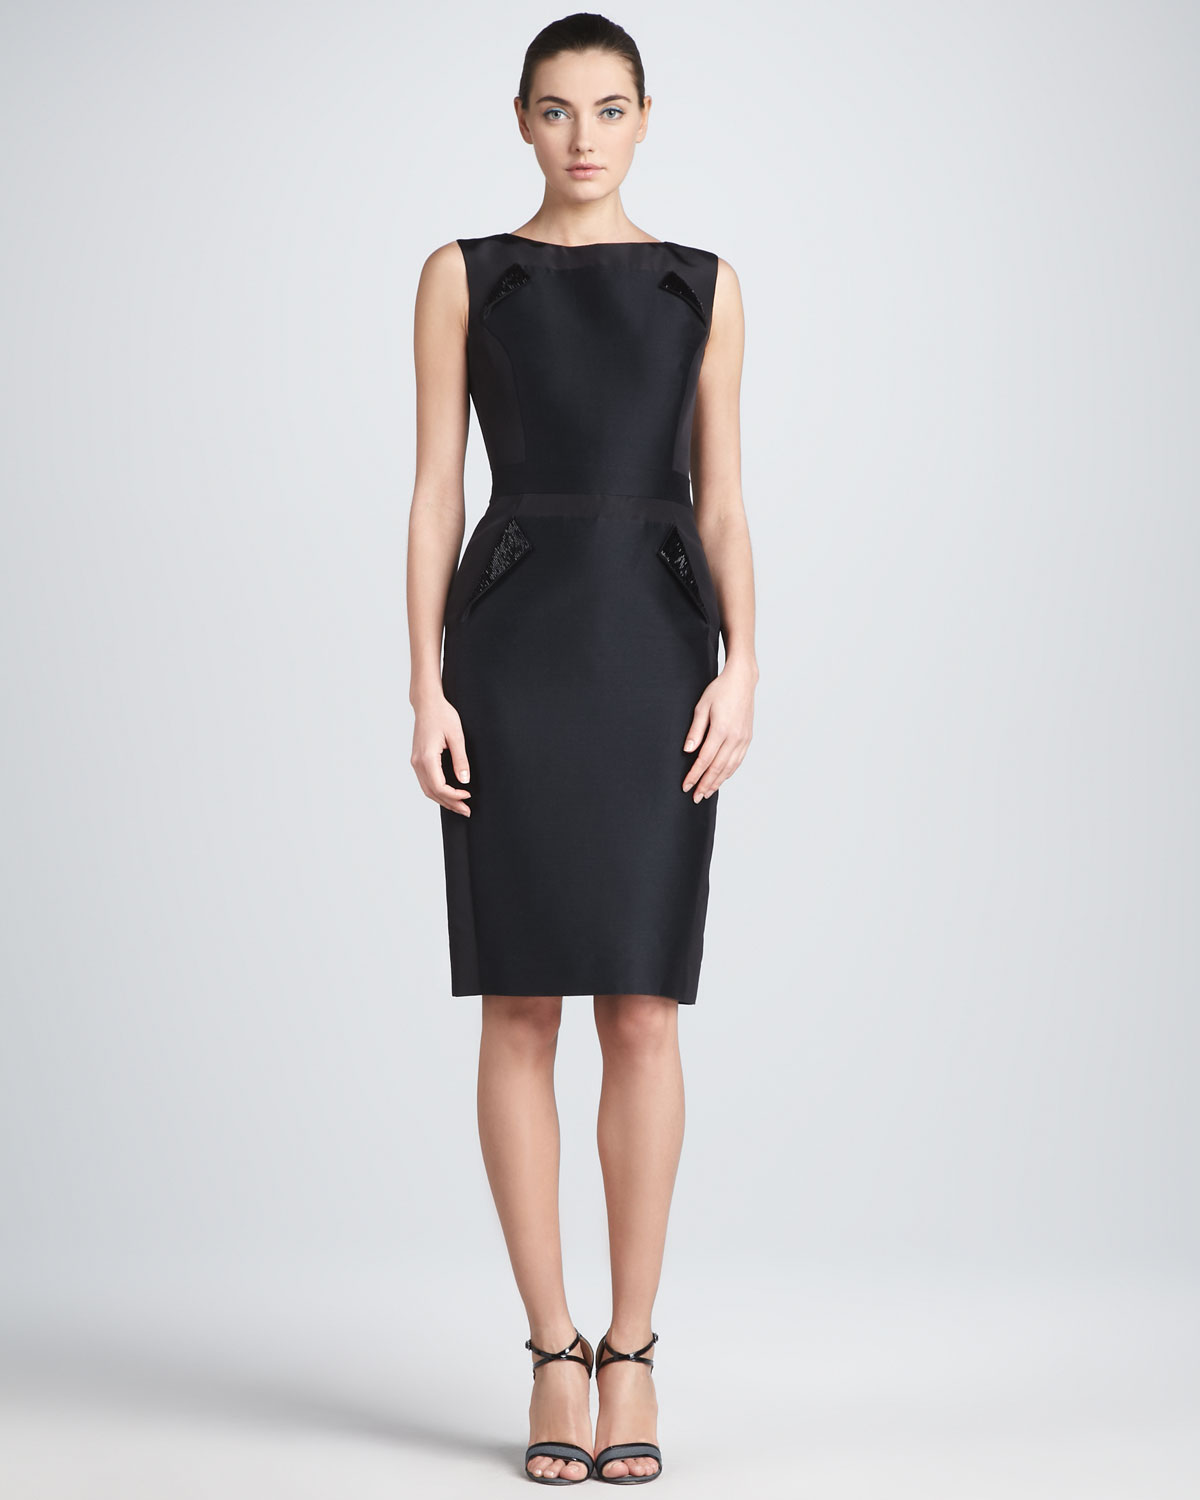 Sheath Dress A versatile sheath dress deserves a place in your closet. From office-worthy numbers to sleek stunners perfect for a night on the town, the figure-flattering cut brings its A-game every time.